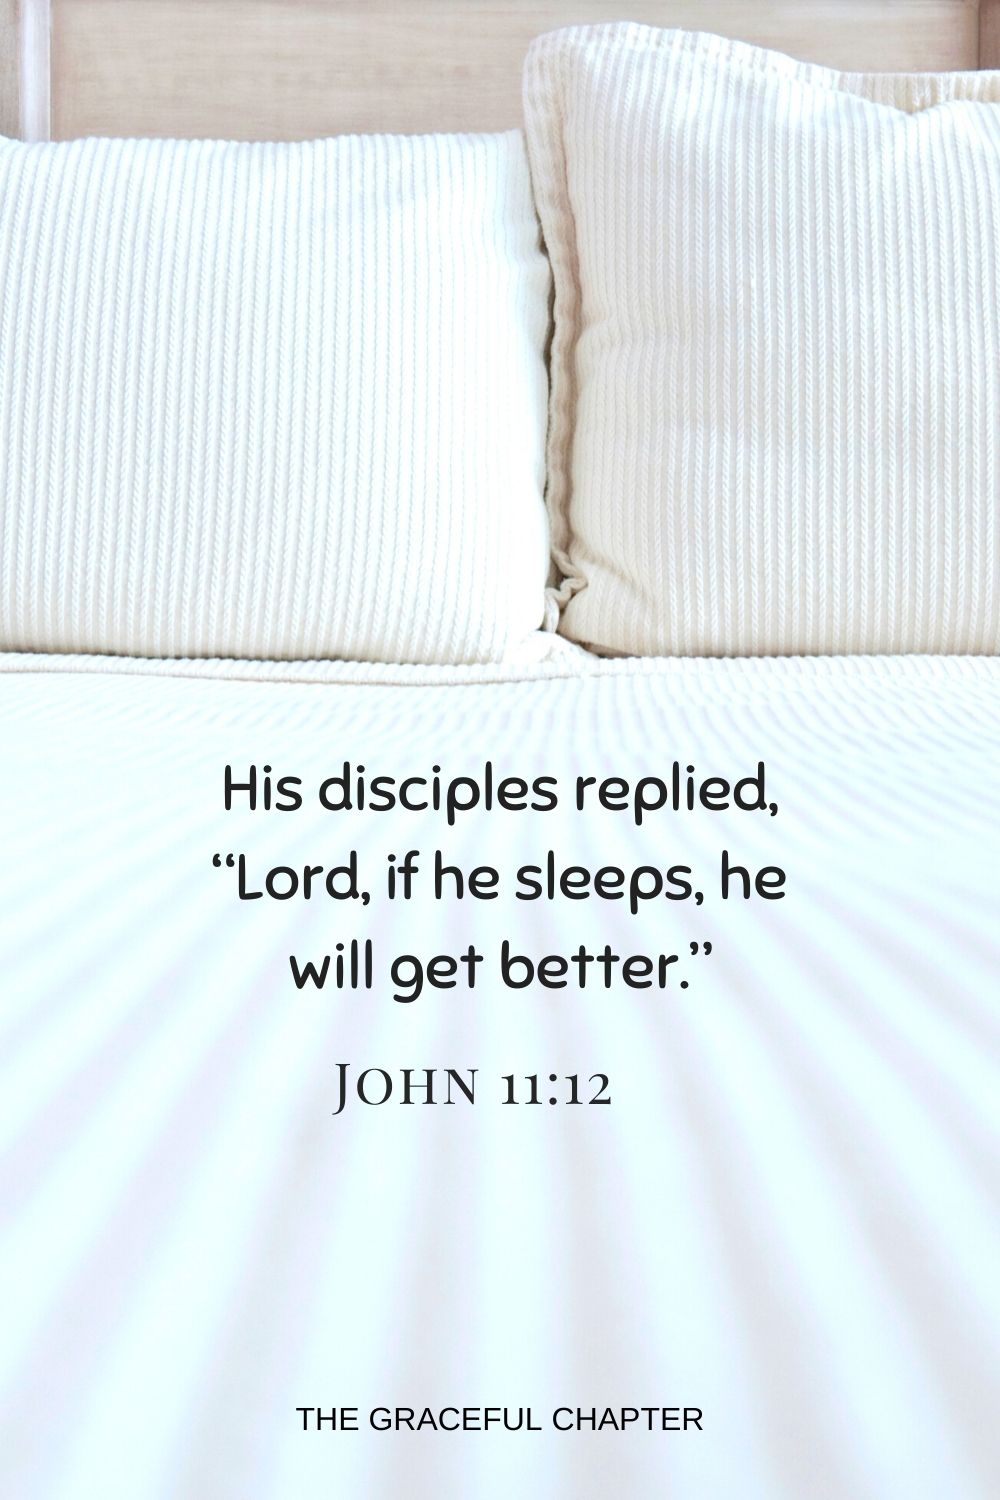 """His disciples replied, """"Lord, if he sleeps, he will get better."""" John 11:12"""